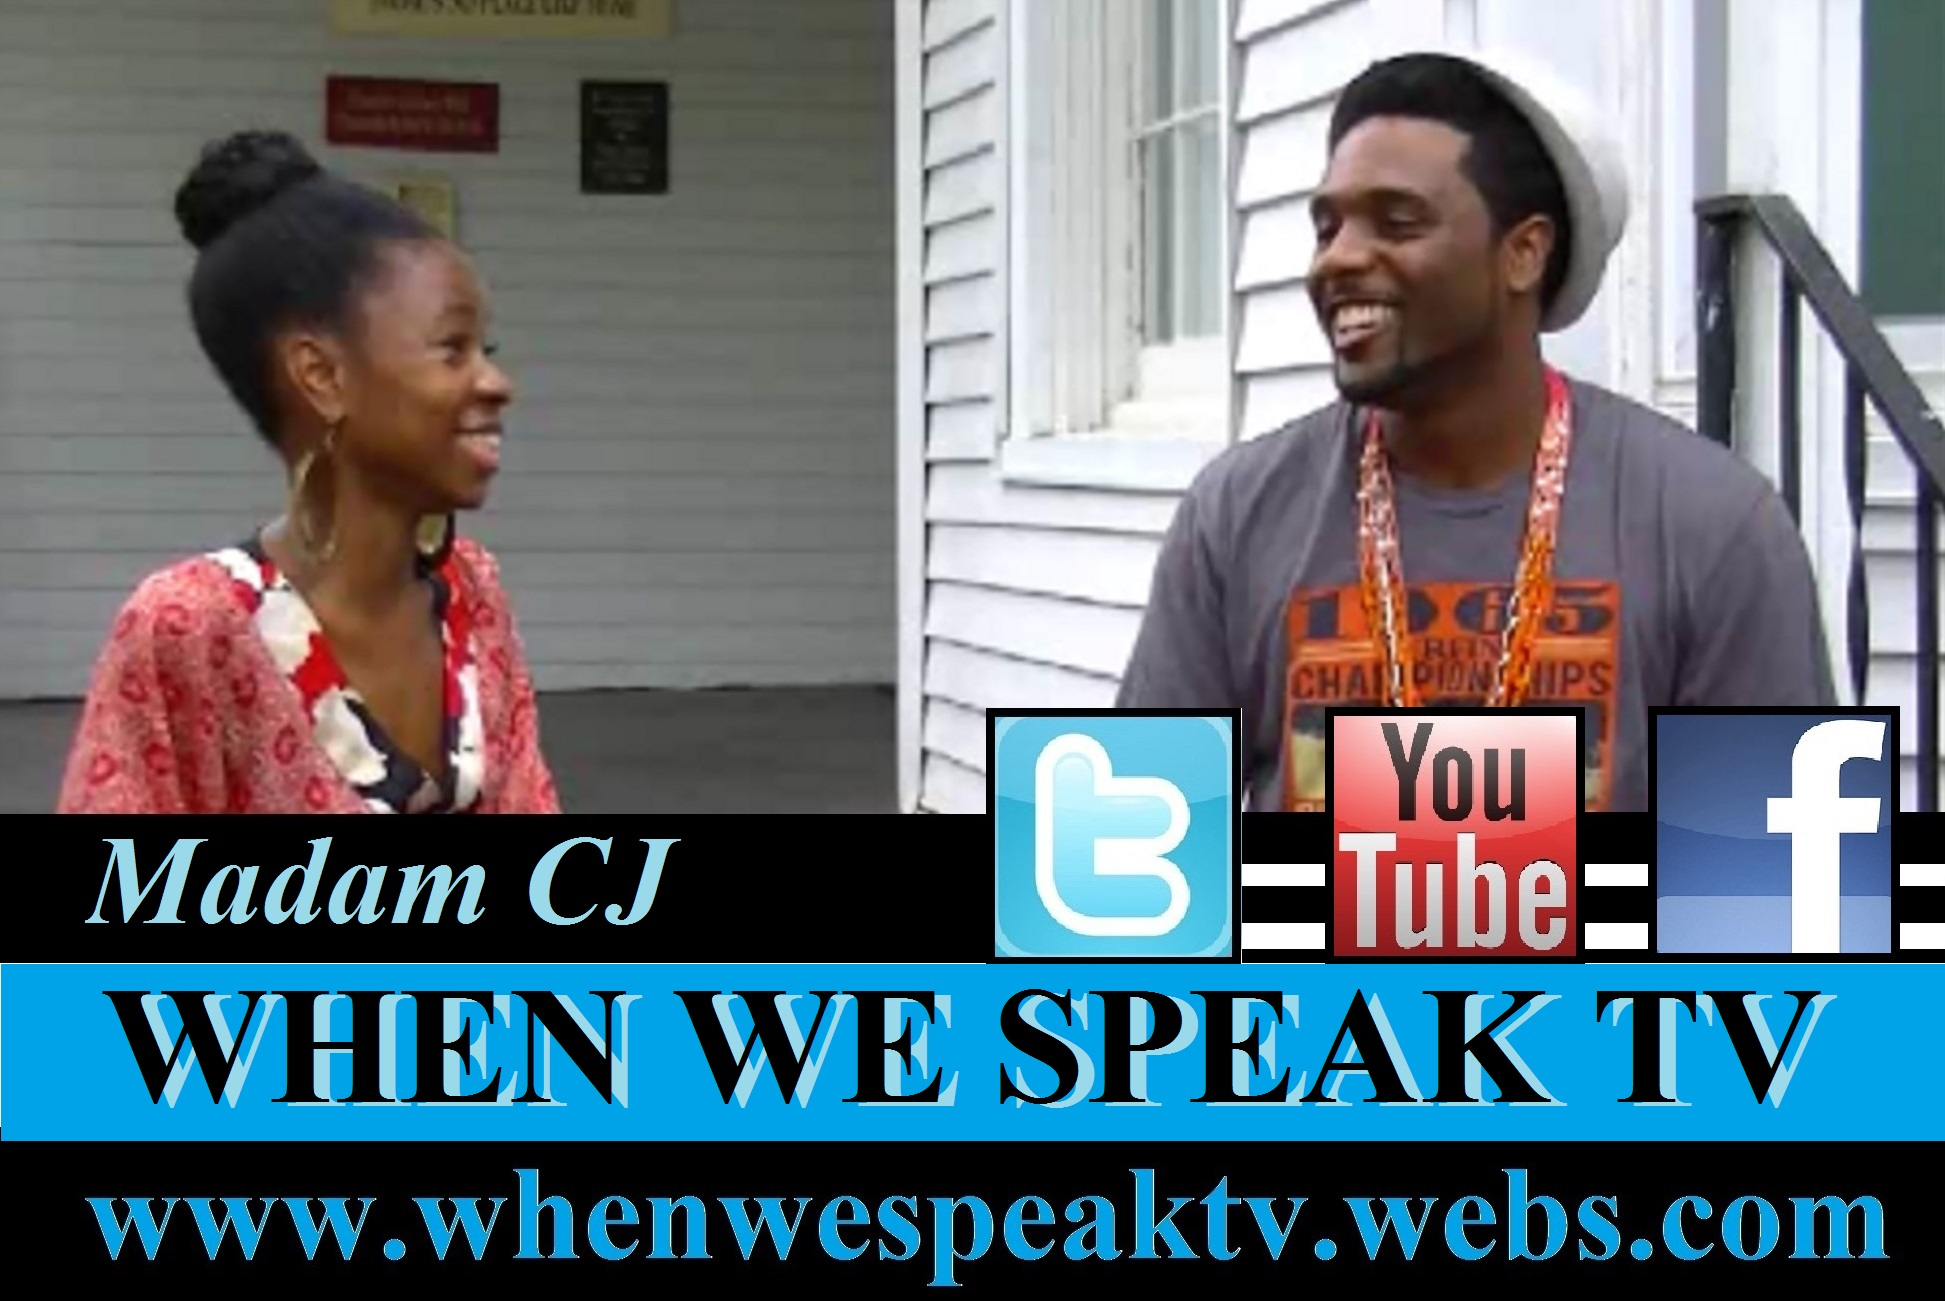 Madam CJ on When We Speak